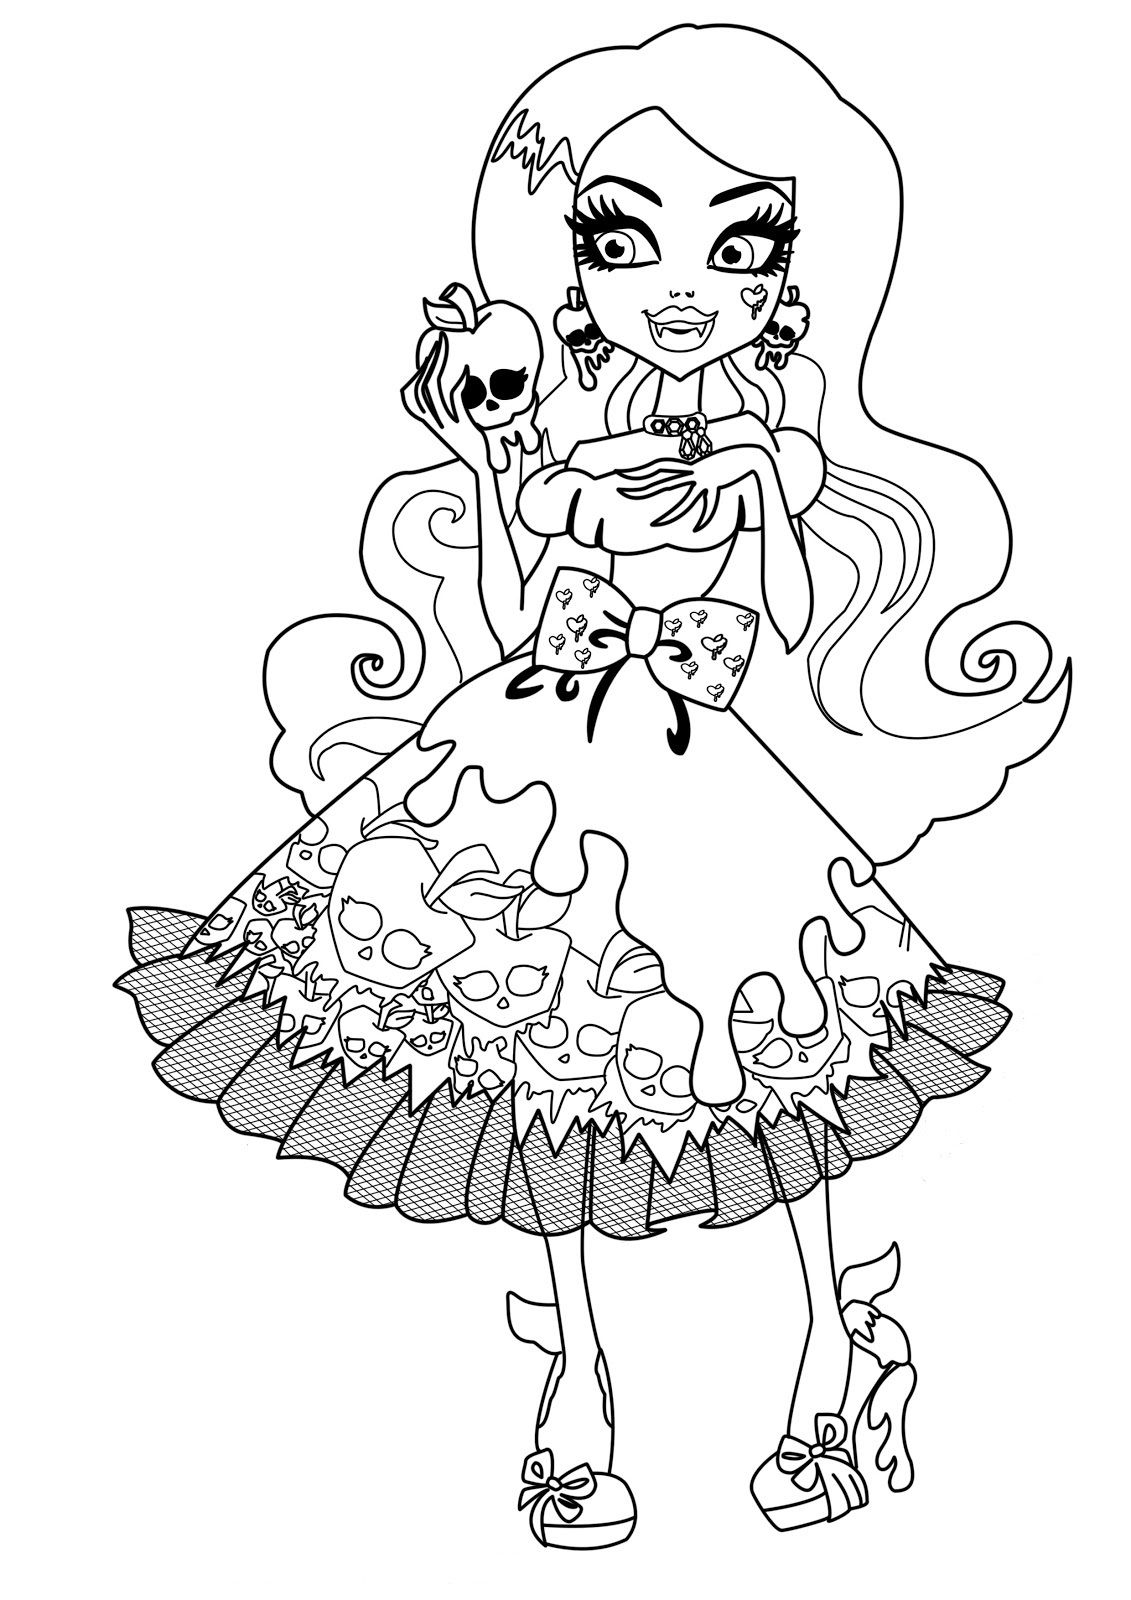 Draculaura Monster High Dolls Coloring Pages Monster High Coloring to Print Of Exquisite Monster High Printables Coloring Pages Free Gallery